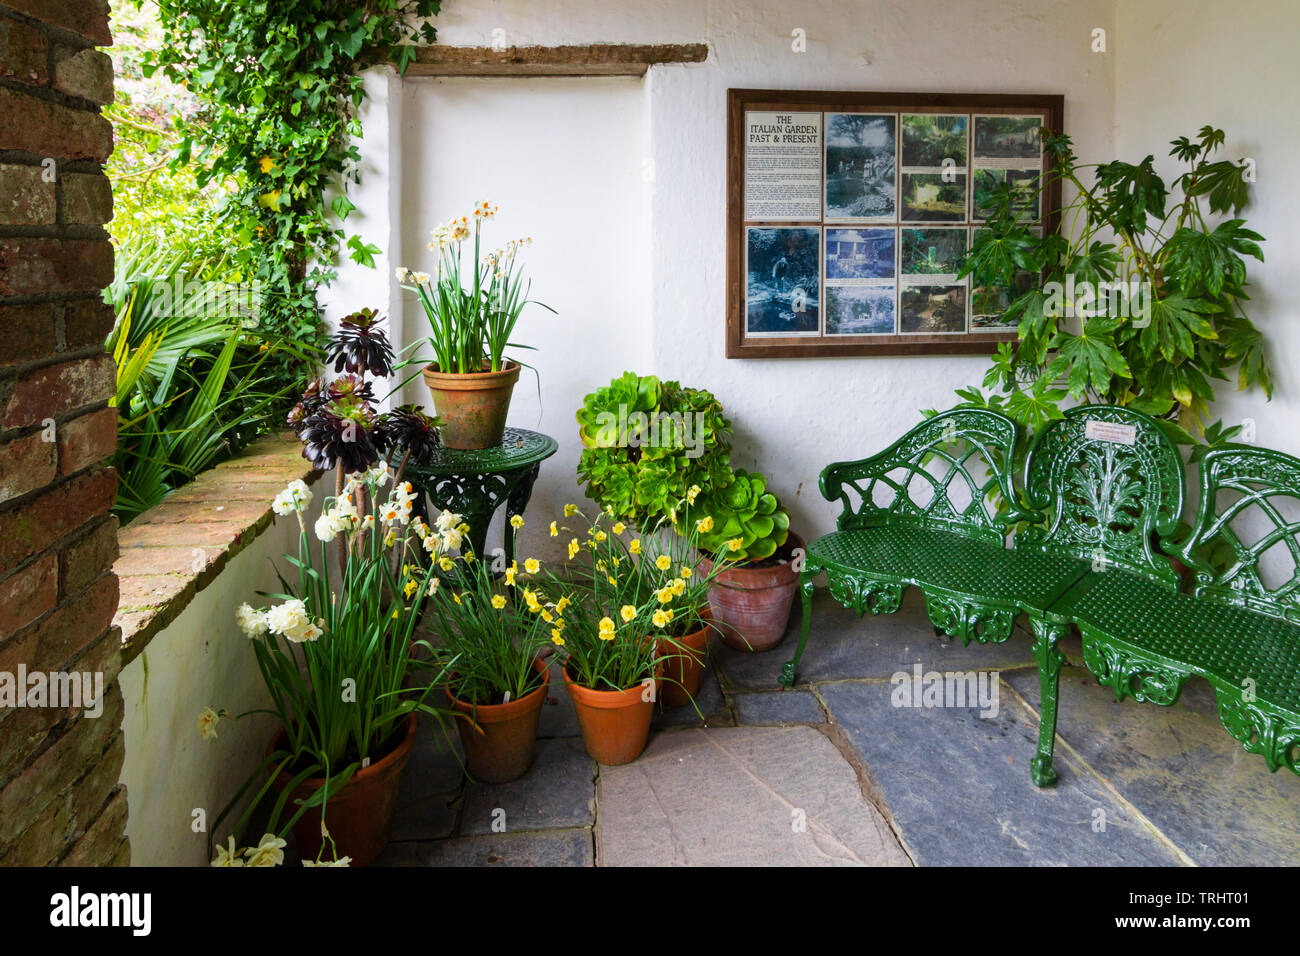 Spring bulbs and a cast iron green bench decorate the covered sitting area in the Italian Garden at Heligan, Cornwall, UK - Stock Image